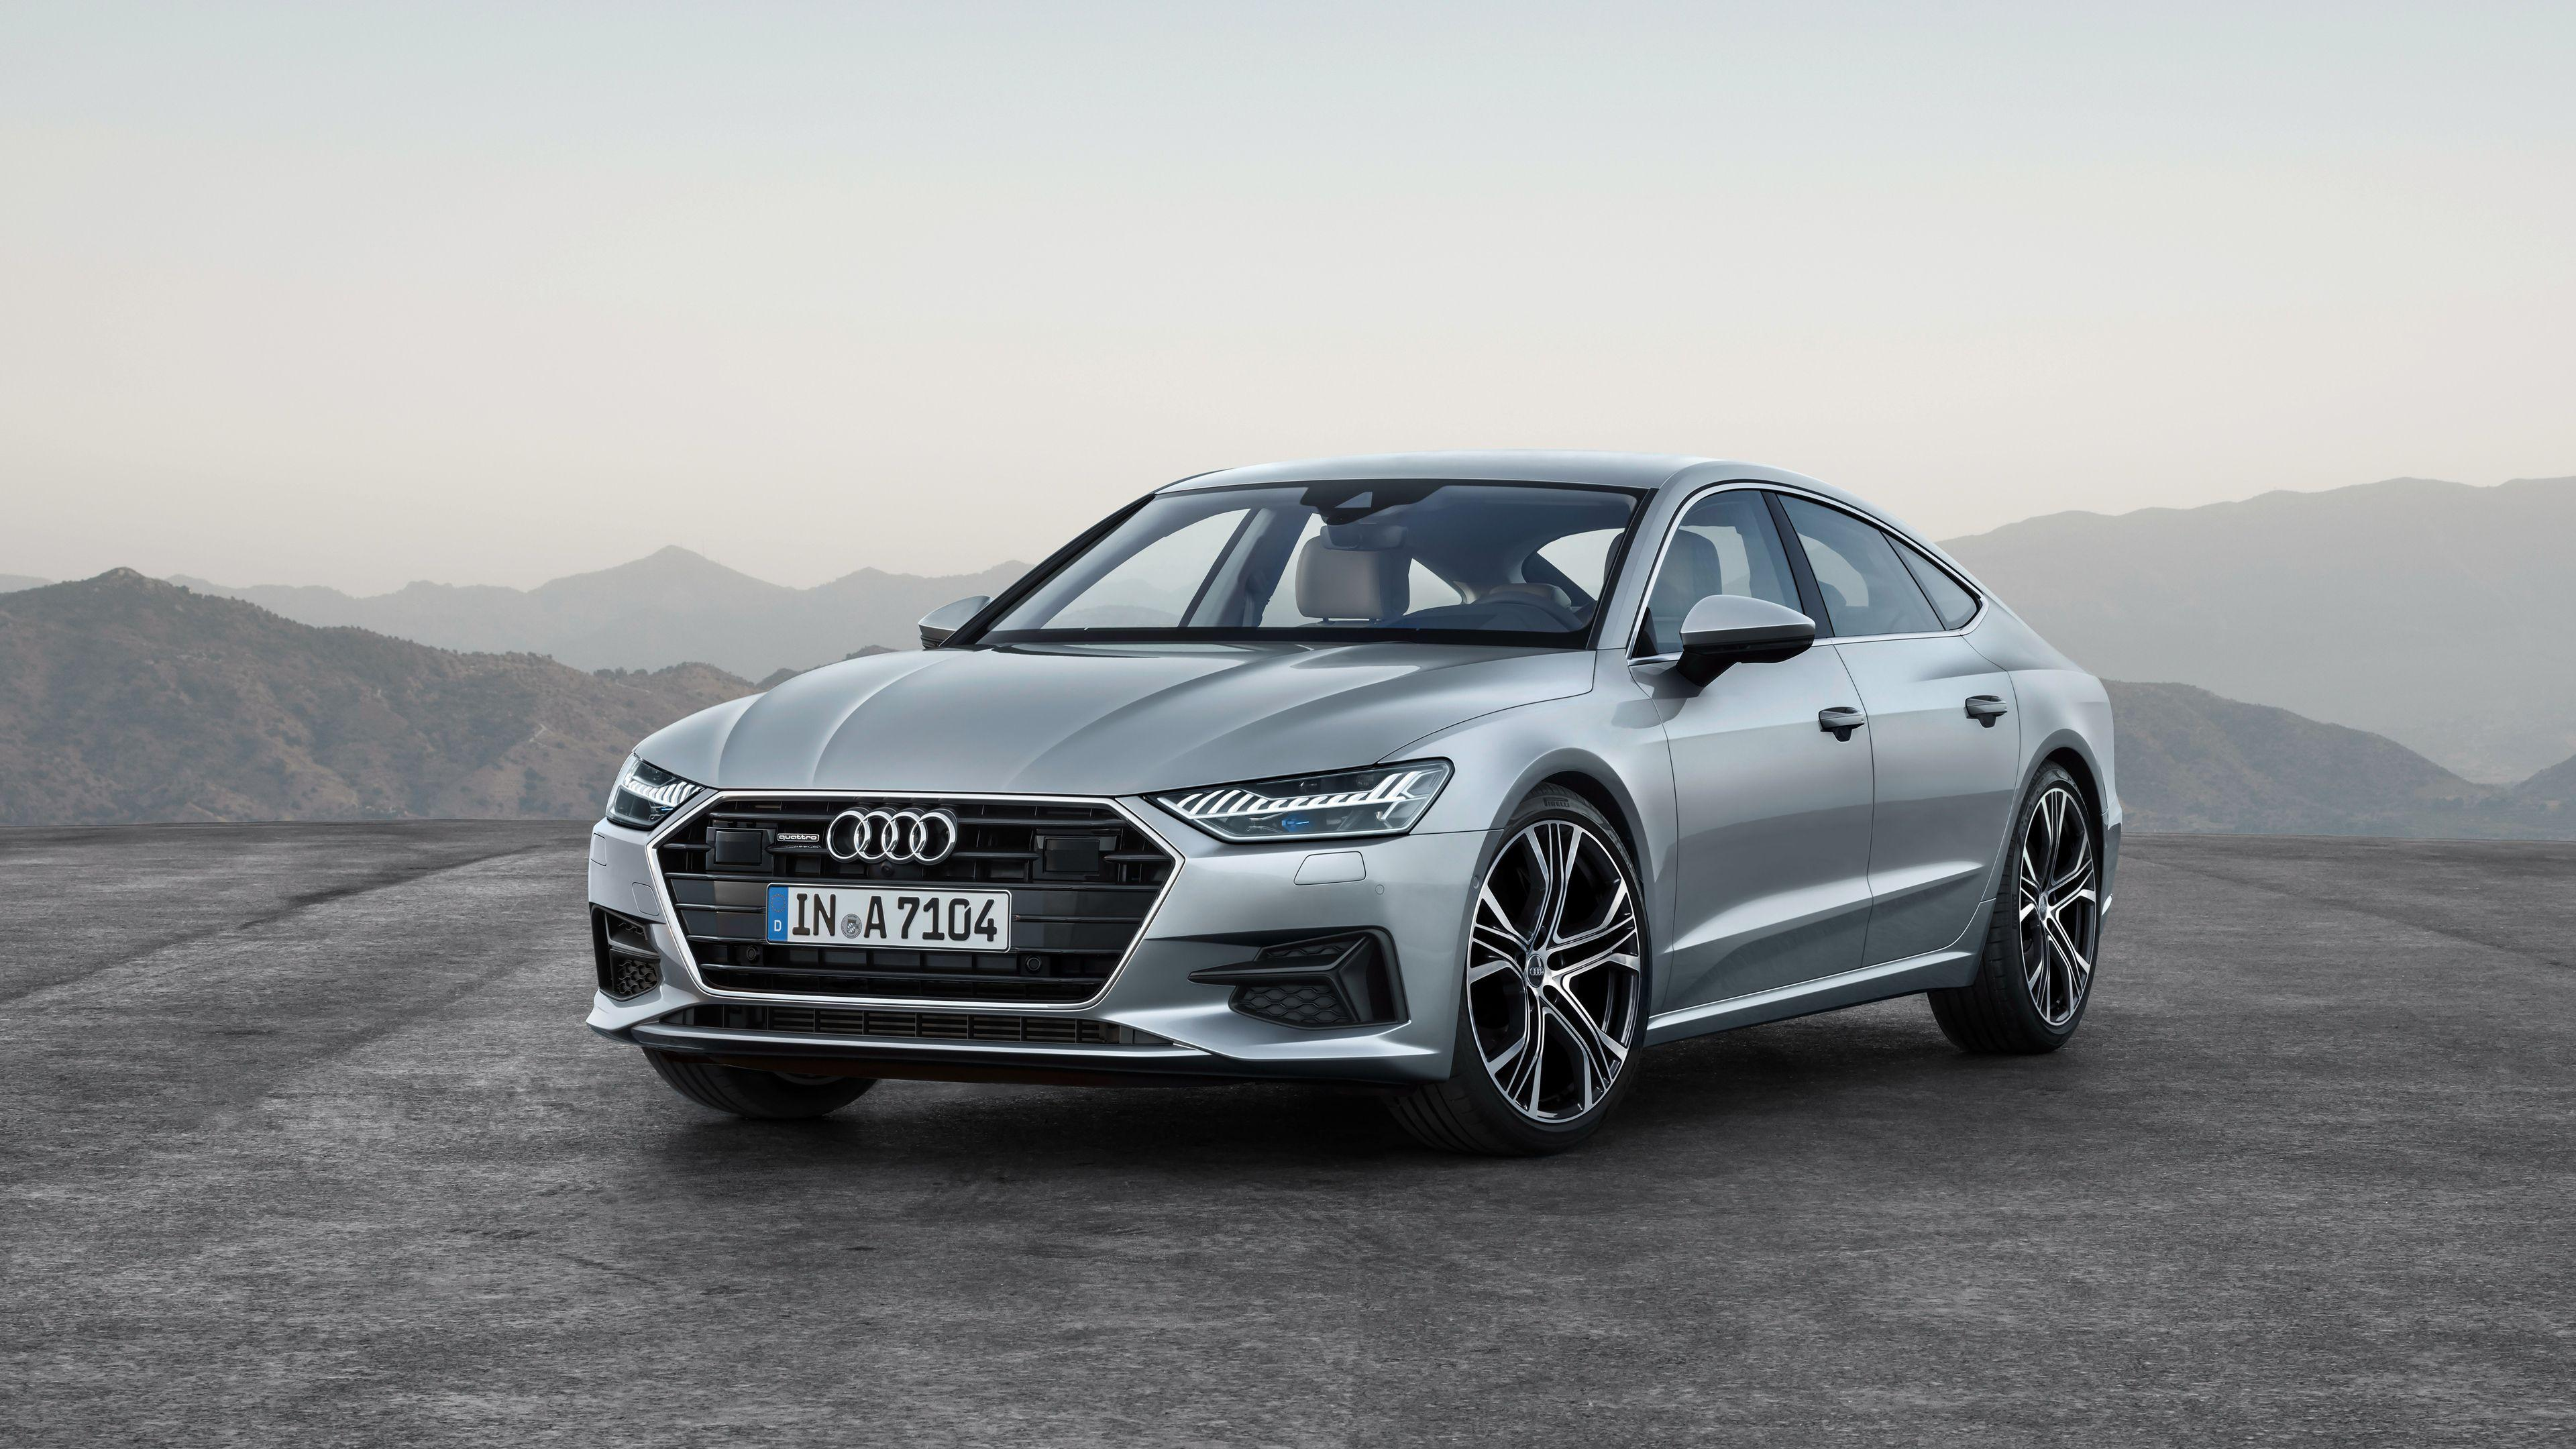 Audi Wallpapers - Page 1 - HD Wallpapers